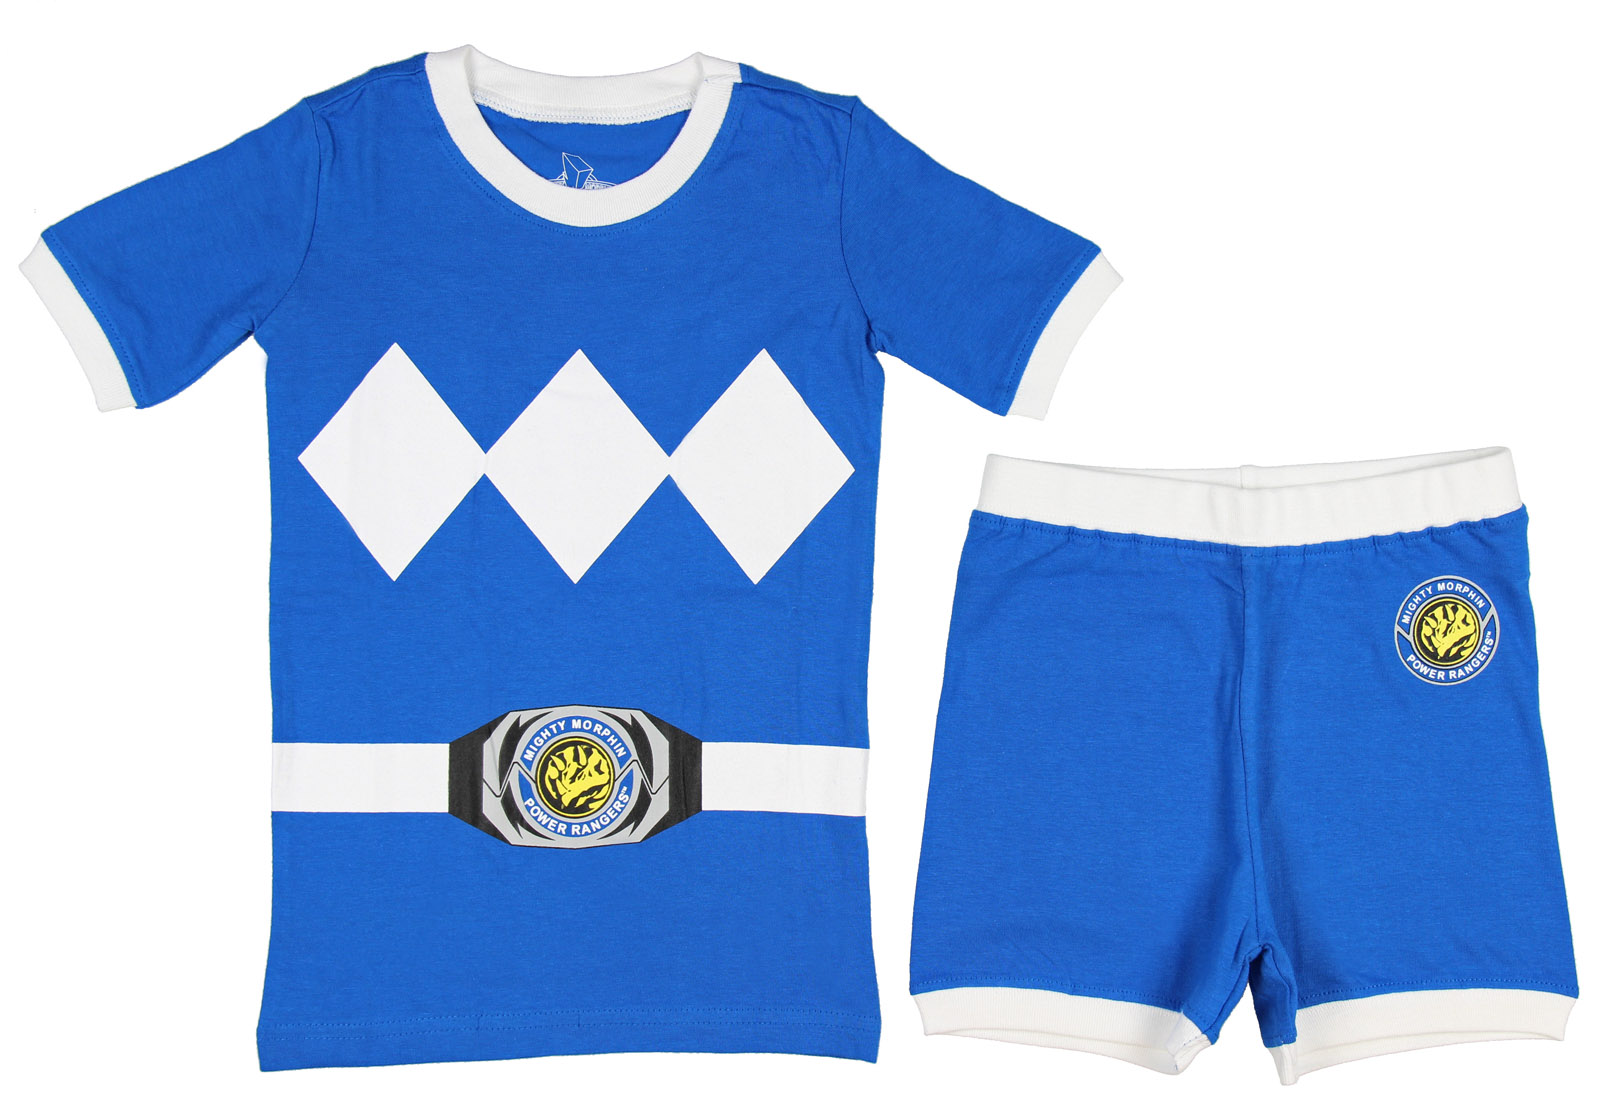 Power Rangers Little   Big Boys Character Cotton Pajamas 10 Blue. About  this product. Picture 1 of 5  Picture 2 of 5  Picture 3 of 5 ... ccbbf97b8